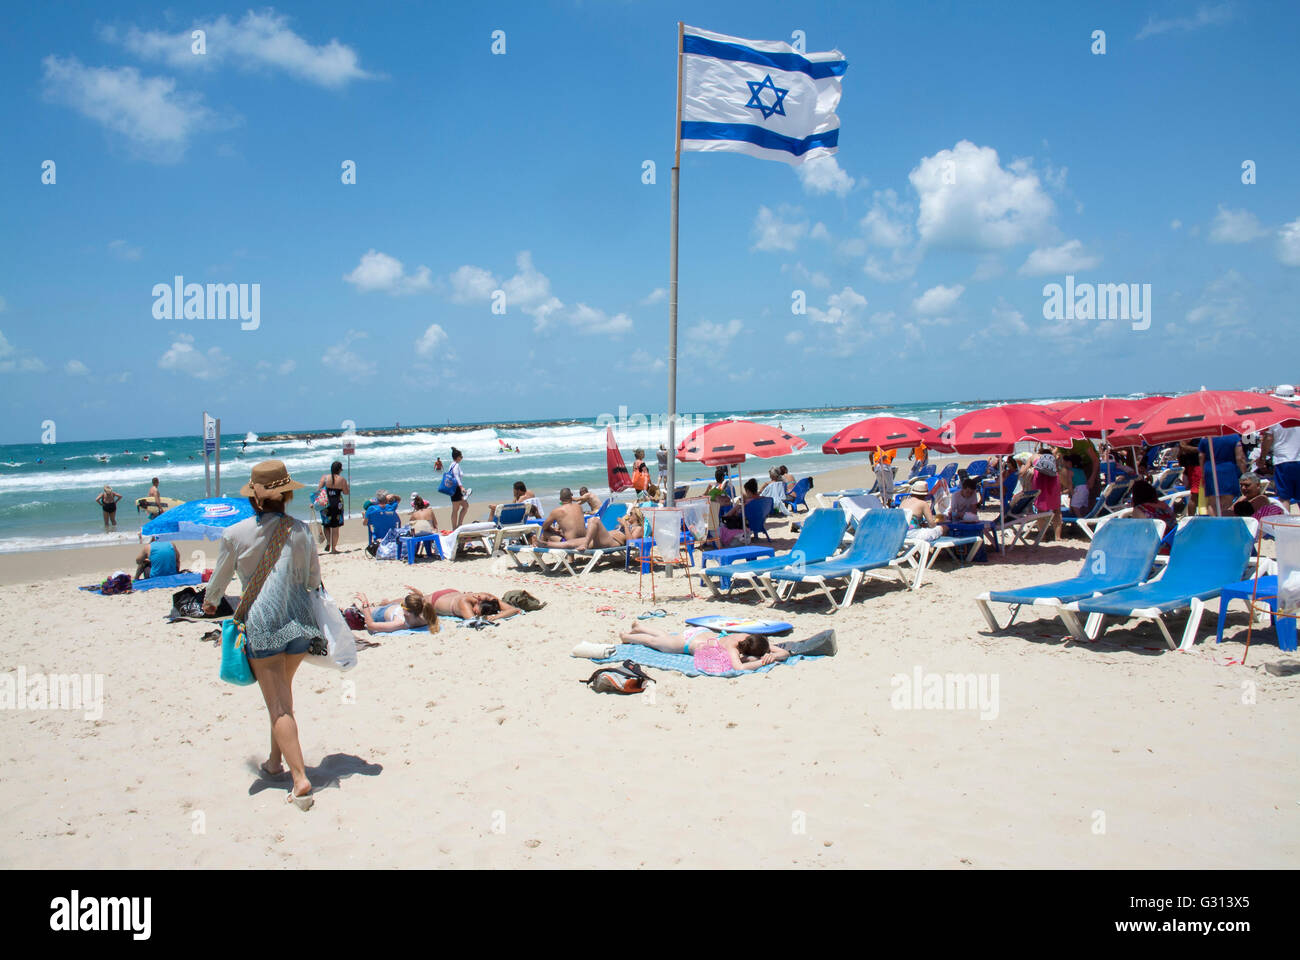 Beach at Tel Aviv, Israel. - Stock Image